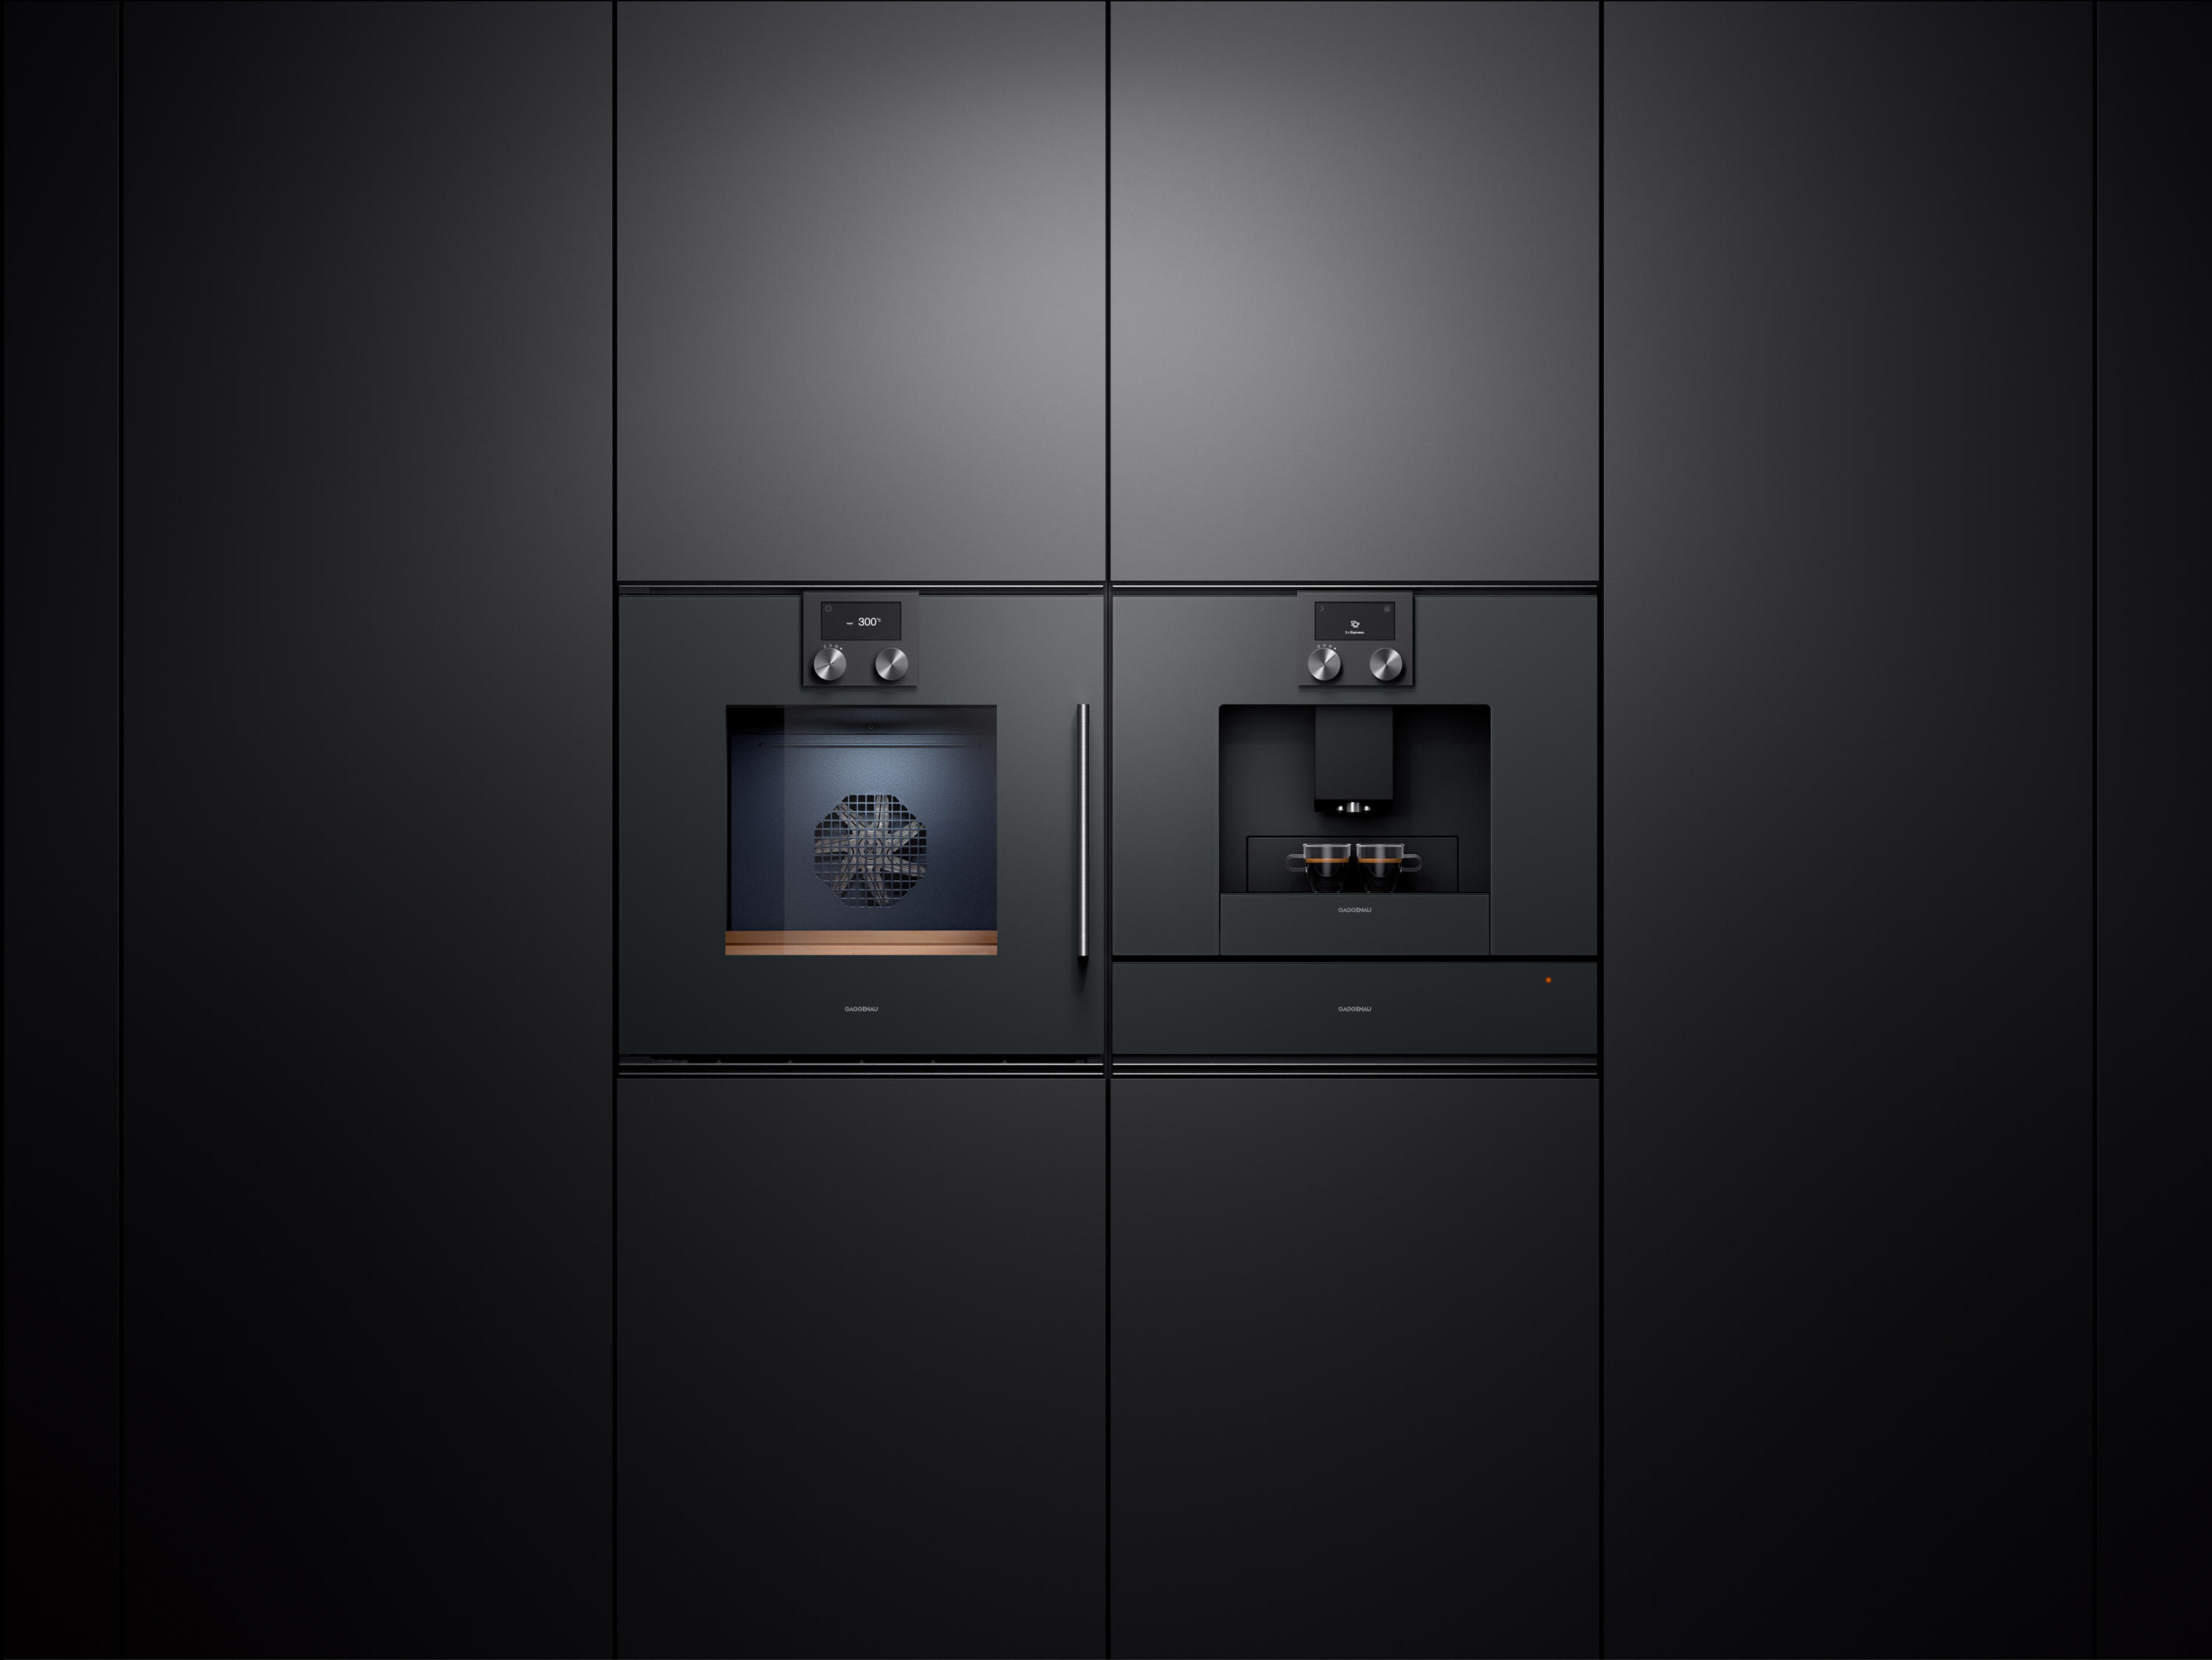 Ovens 200 Series Bop 250 Bop 251 Ovens From Gaggenau Architonic